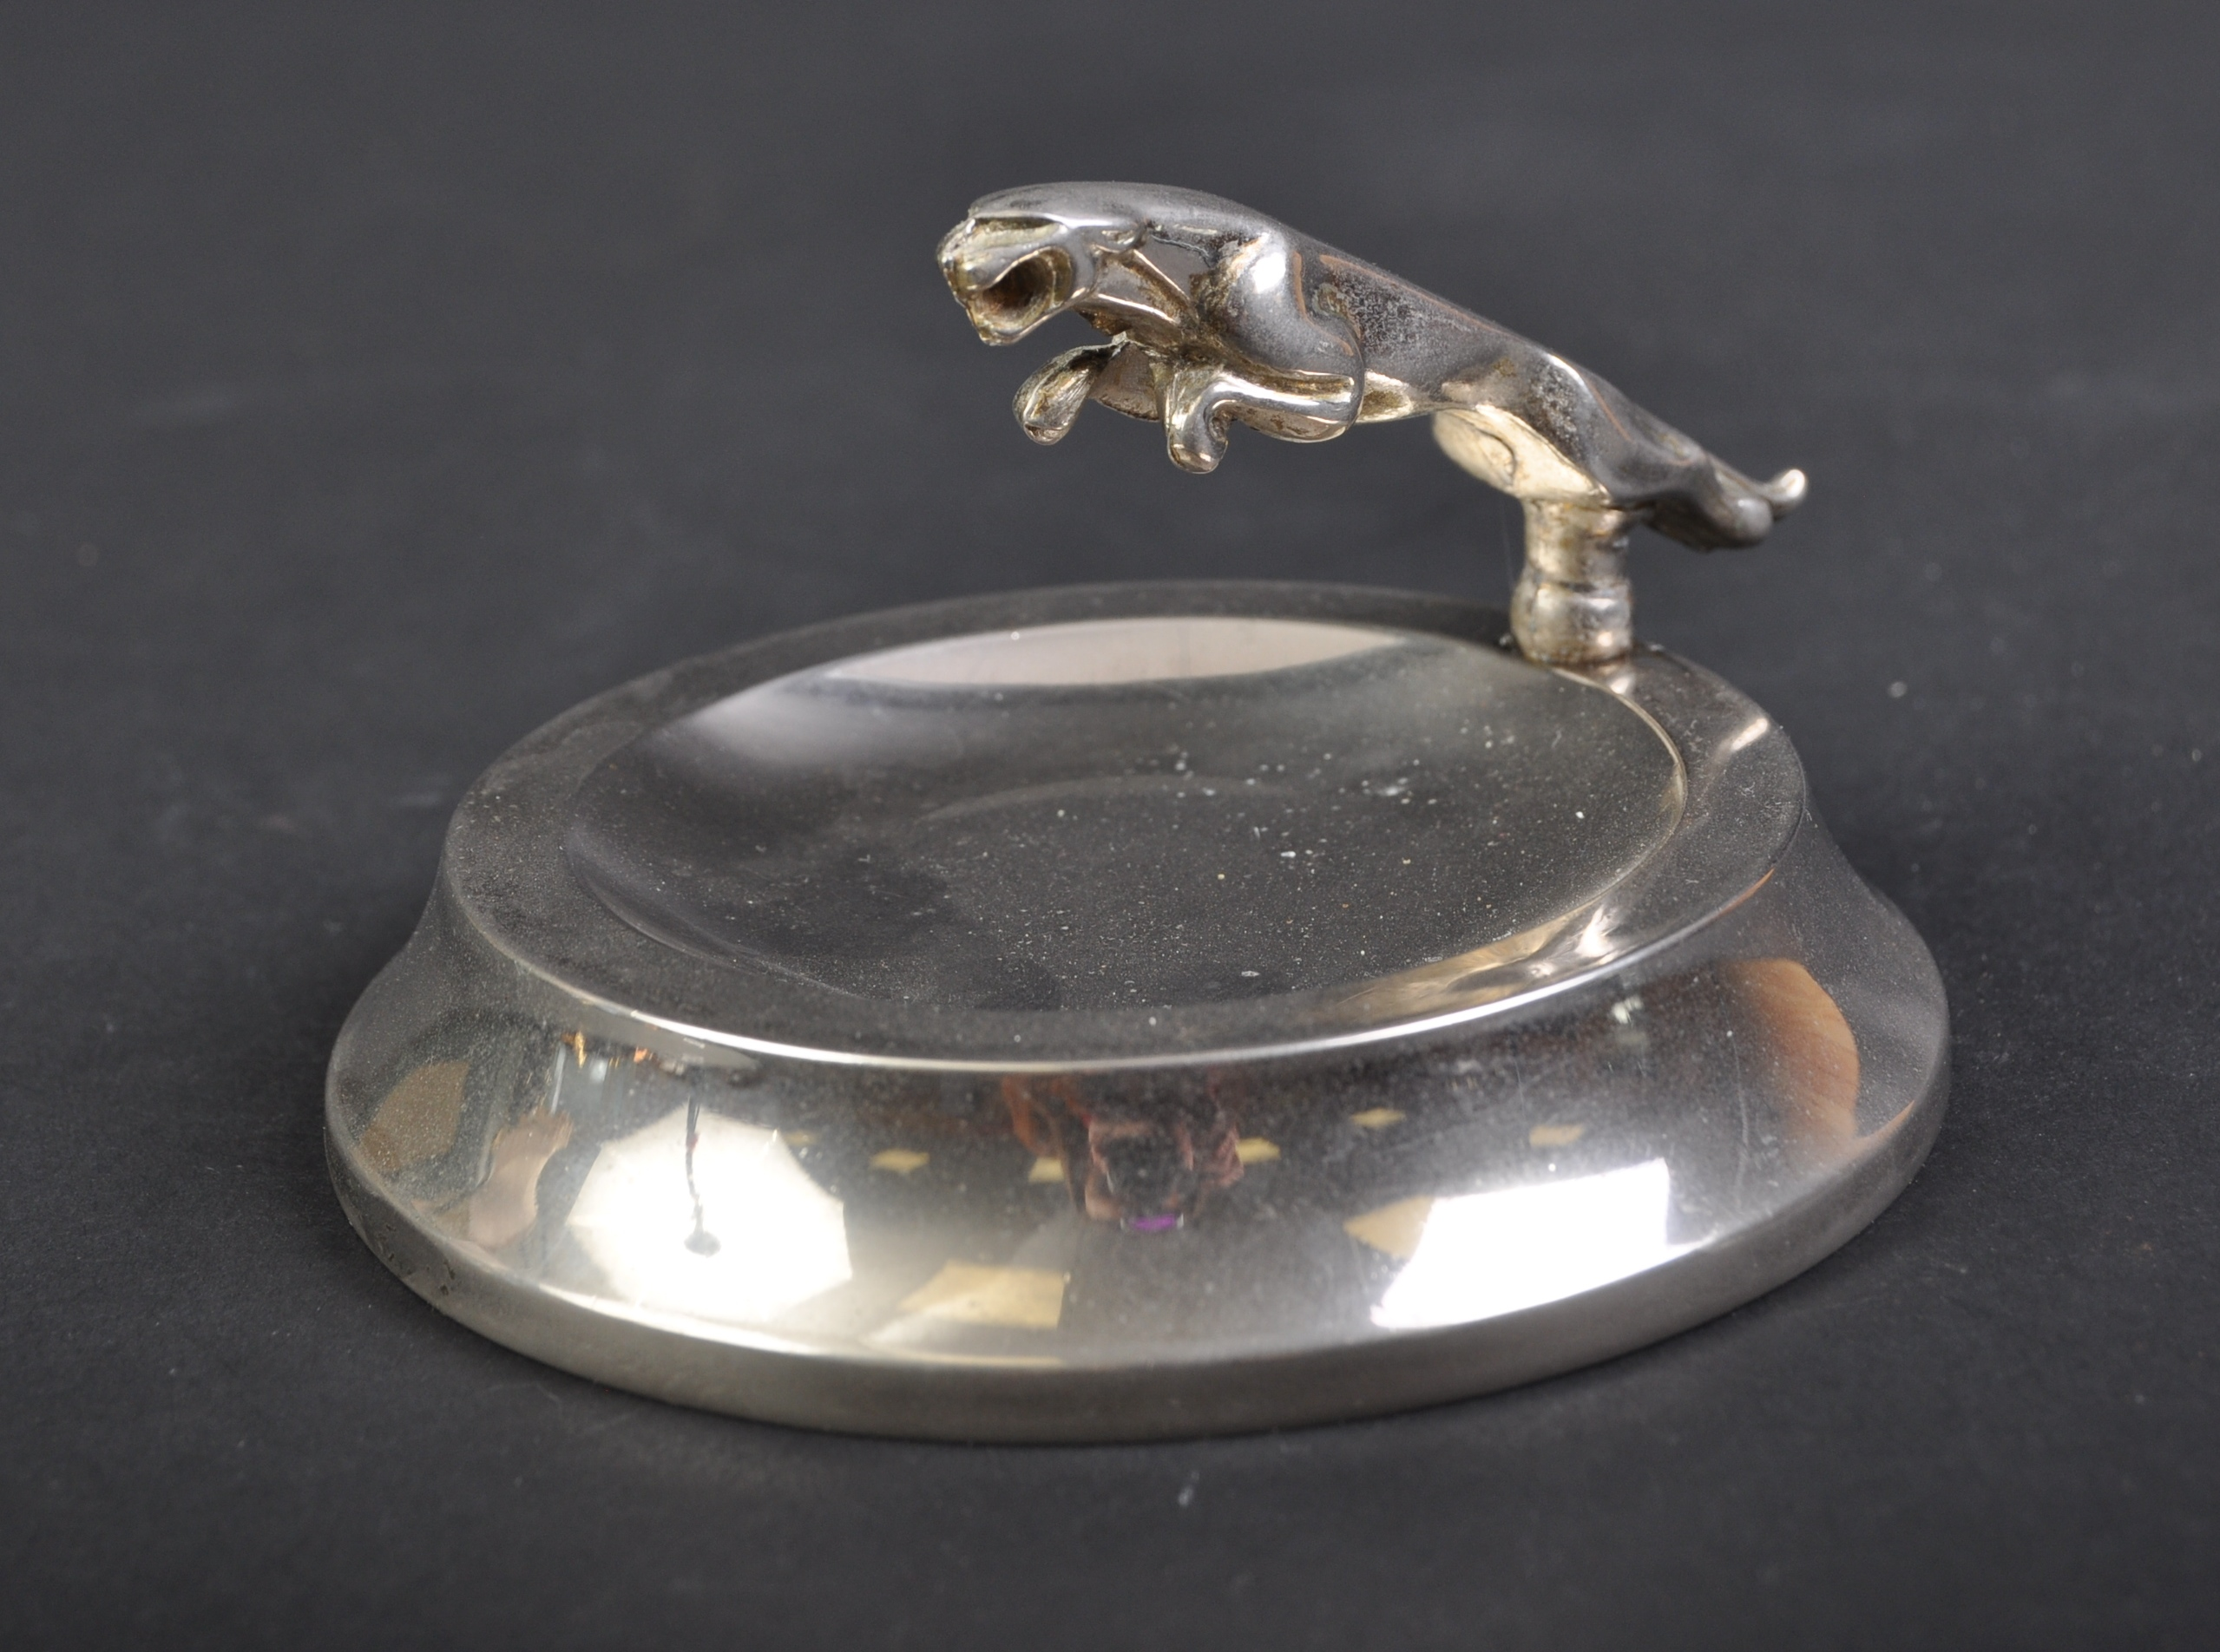 JAGUAR - SMALL 20TH CENTURY PROMOTIONAL ASHTRAY WITH MASCOT